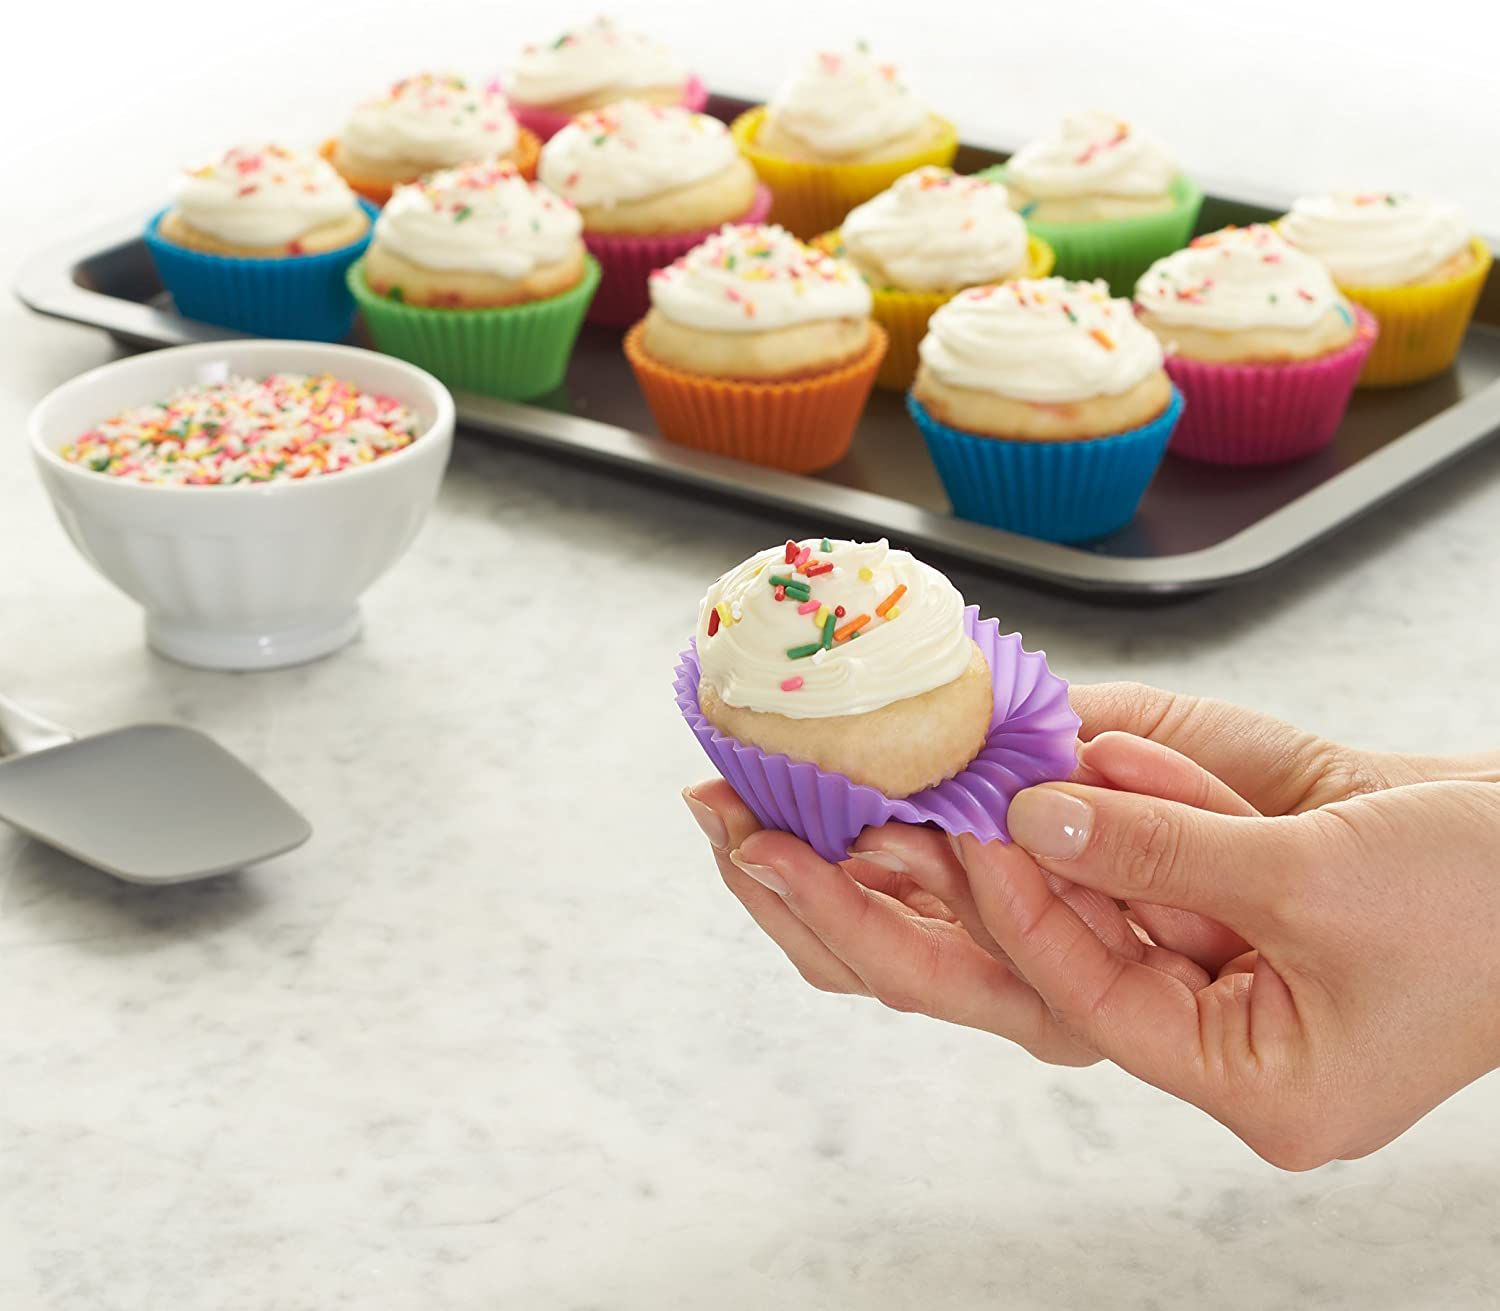 Colorful Silicone Baking Cups